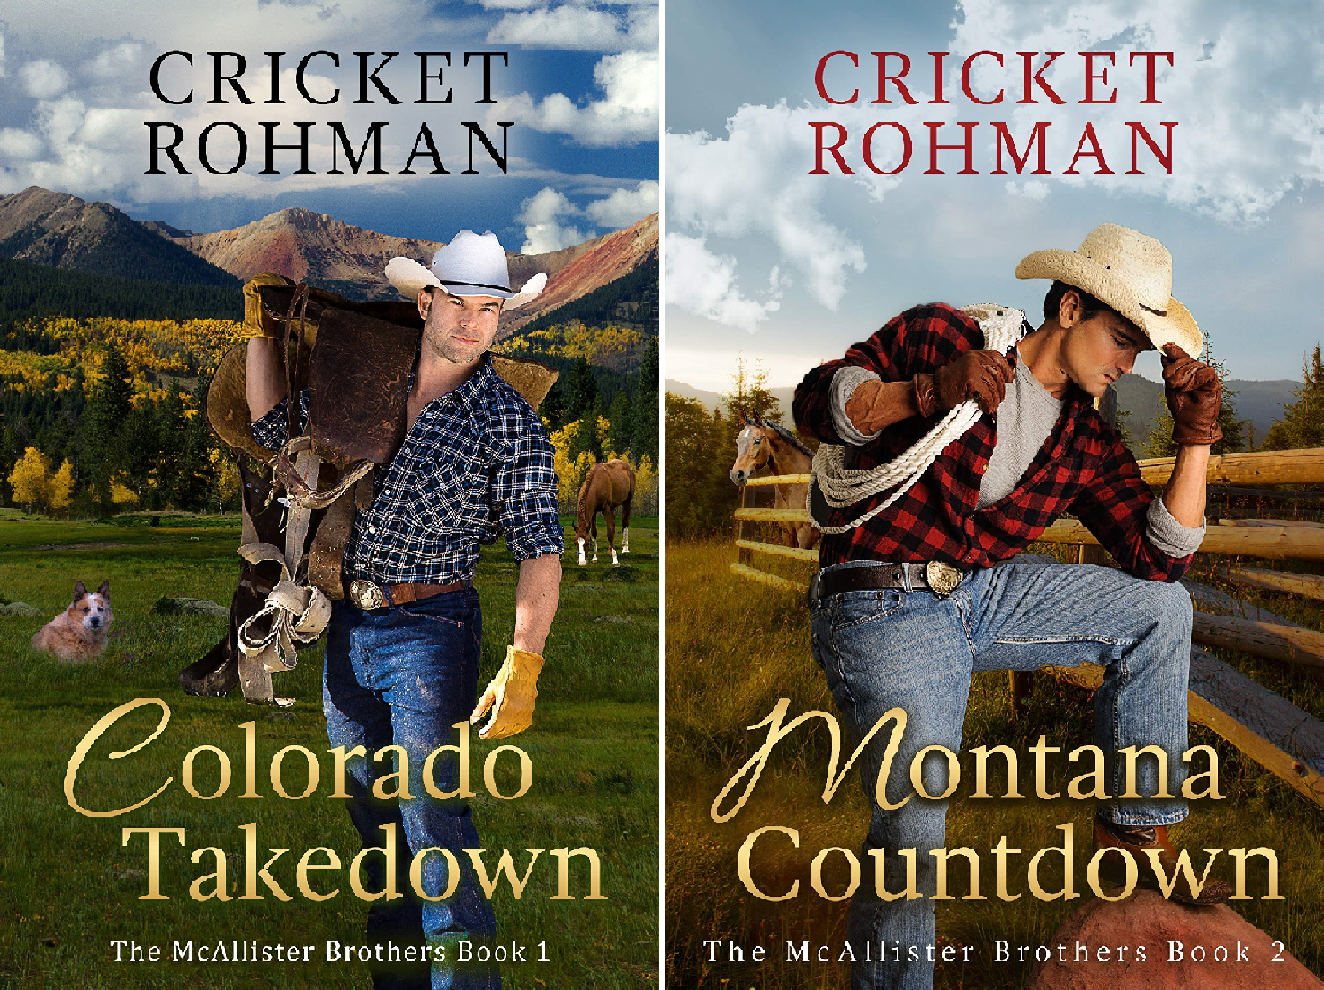 Cricket-bundle (The McAllister Brothers (2 Book Series))